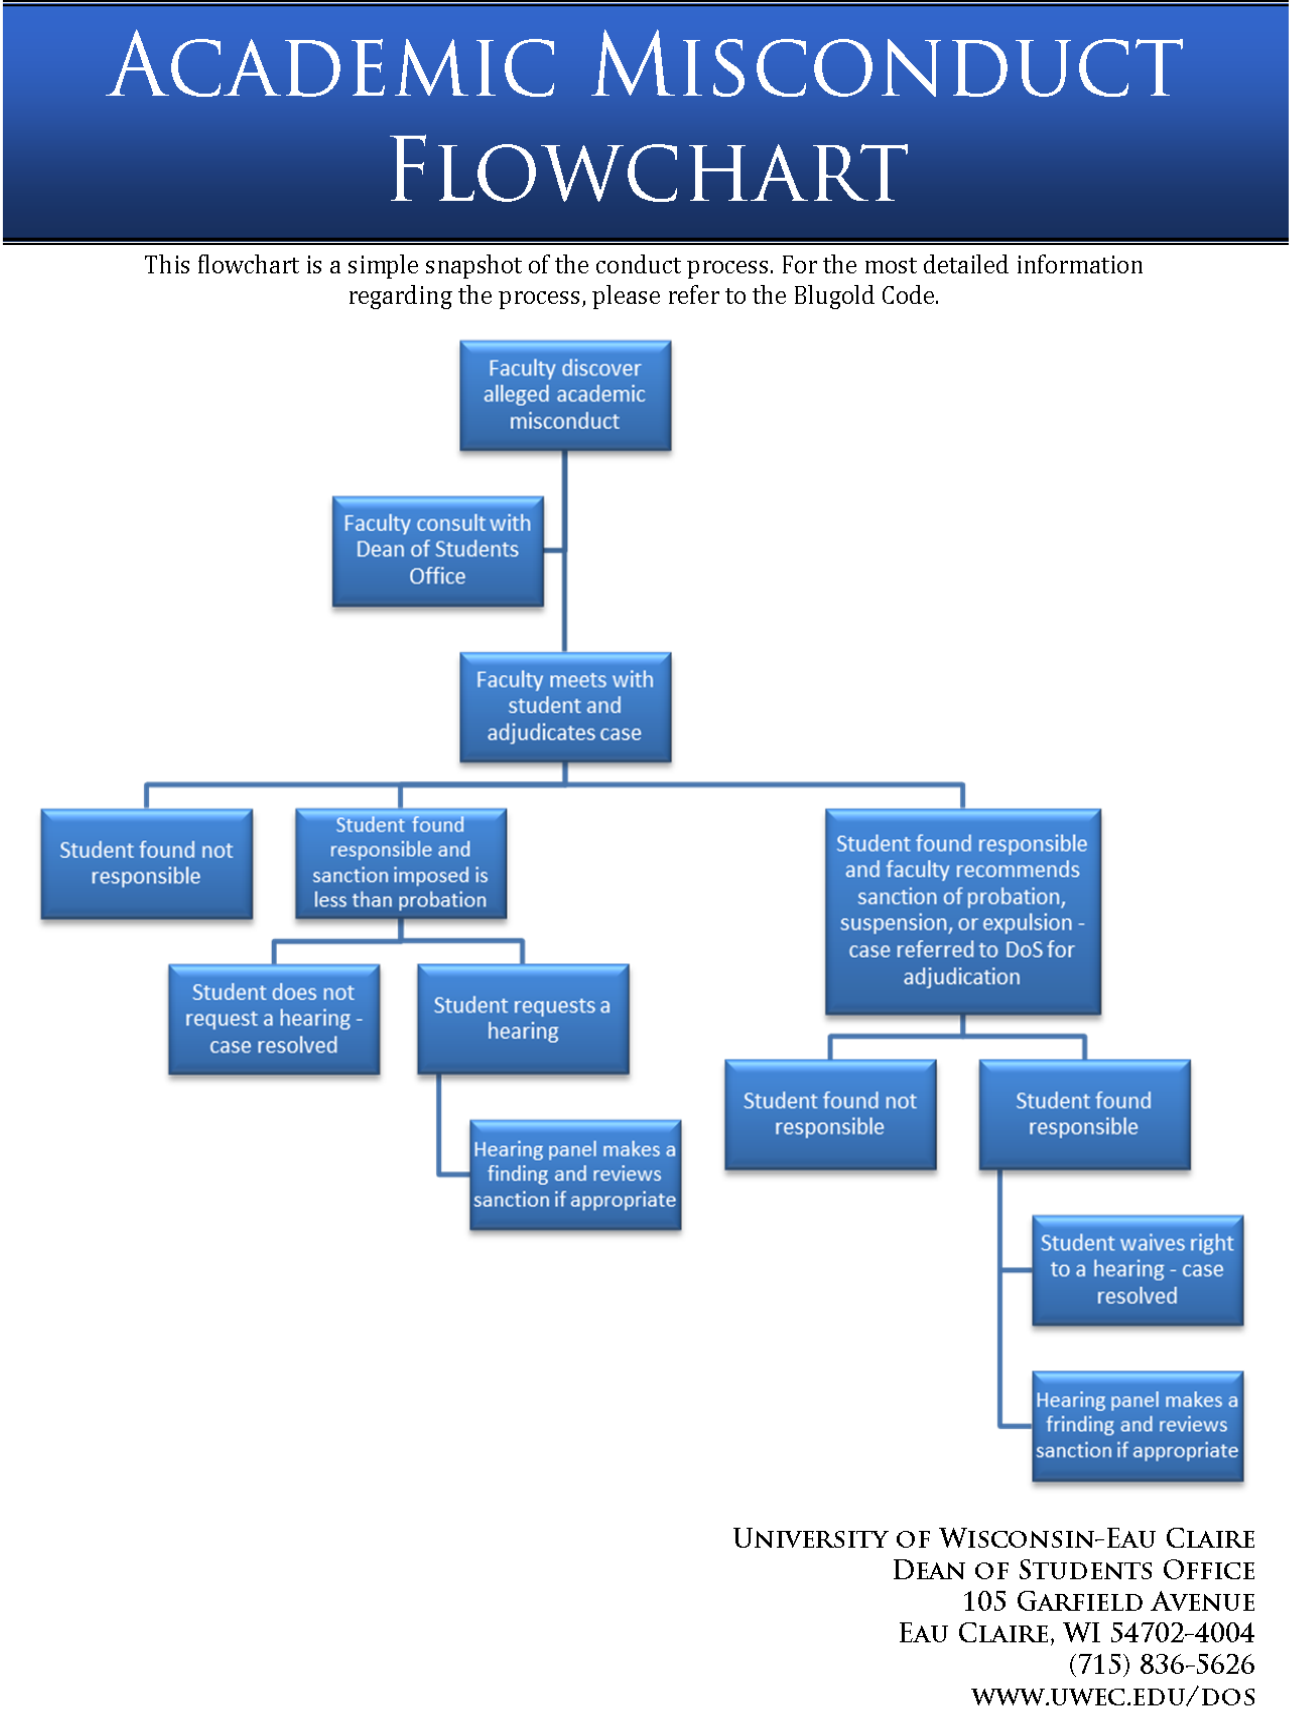 Academic Misconduct Flowchart